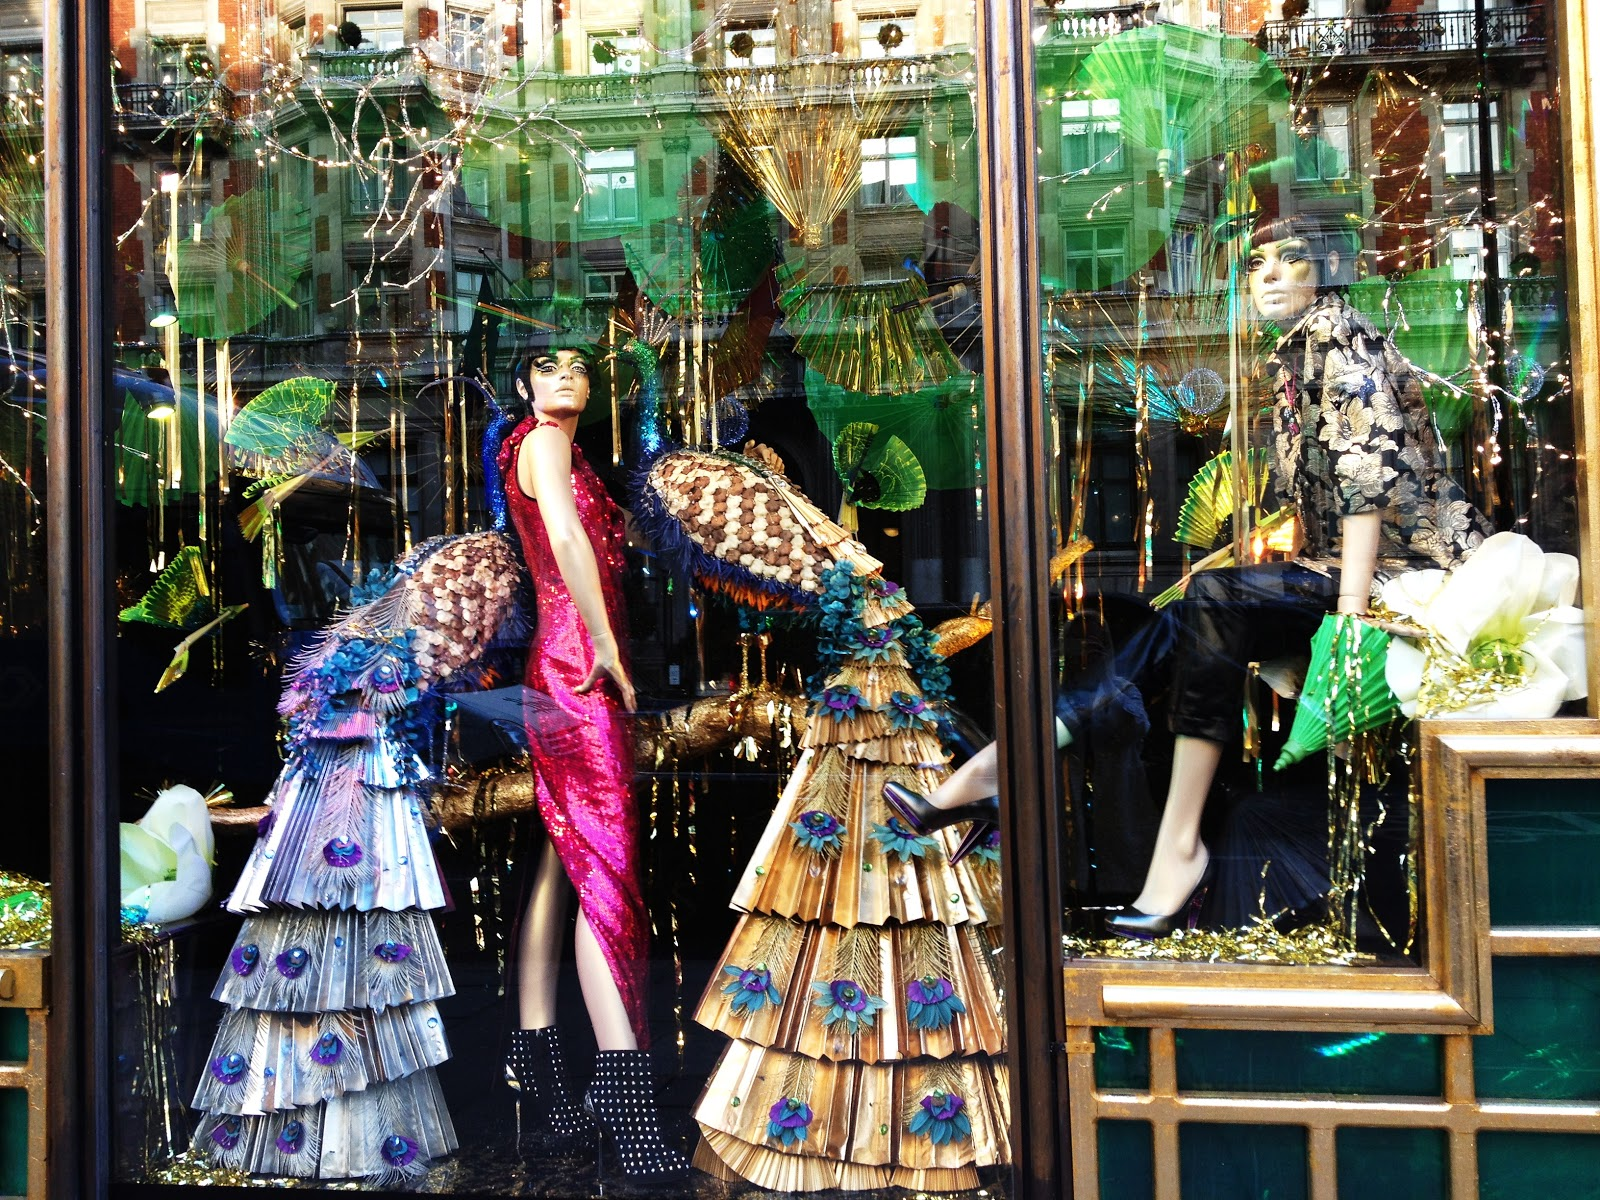 A glam way to design the New Year's window display, with two peacocks in beautiful colors and mannequins dressed festively.